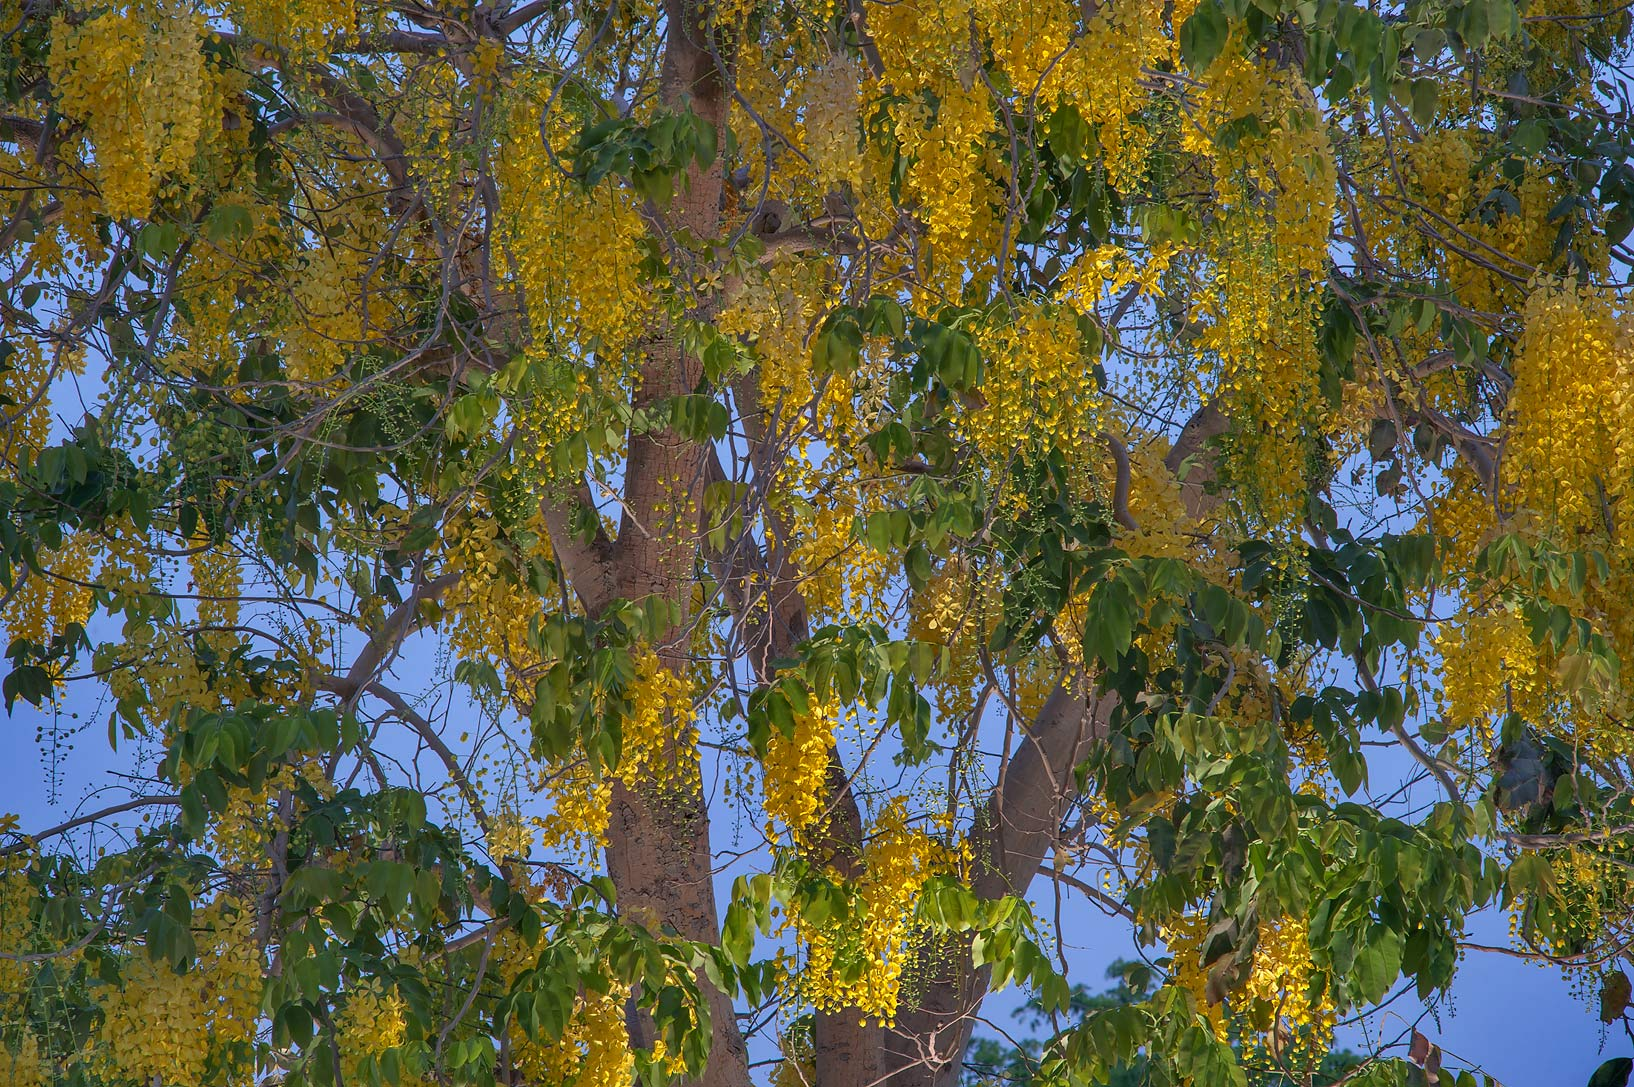 Golden shower tree (Cassia fistula) with flowers in Aspire Park at morning. Doha, Qatar